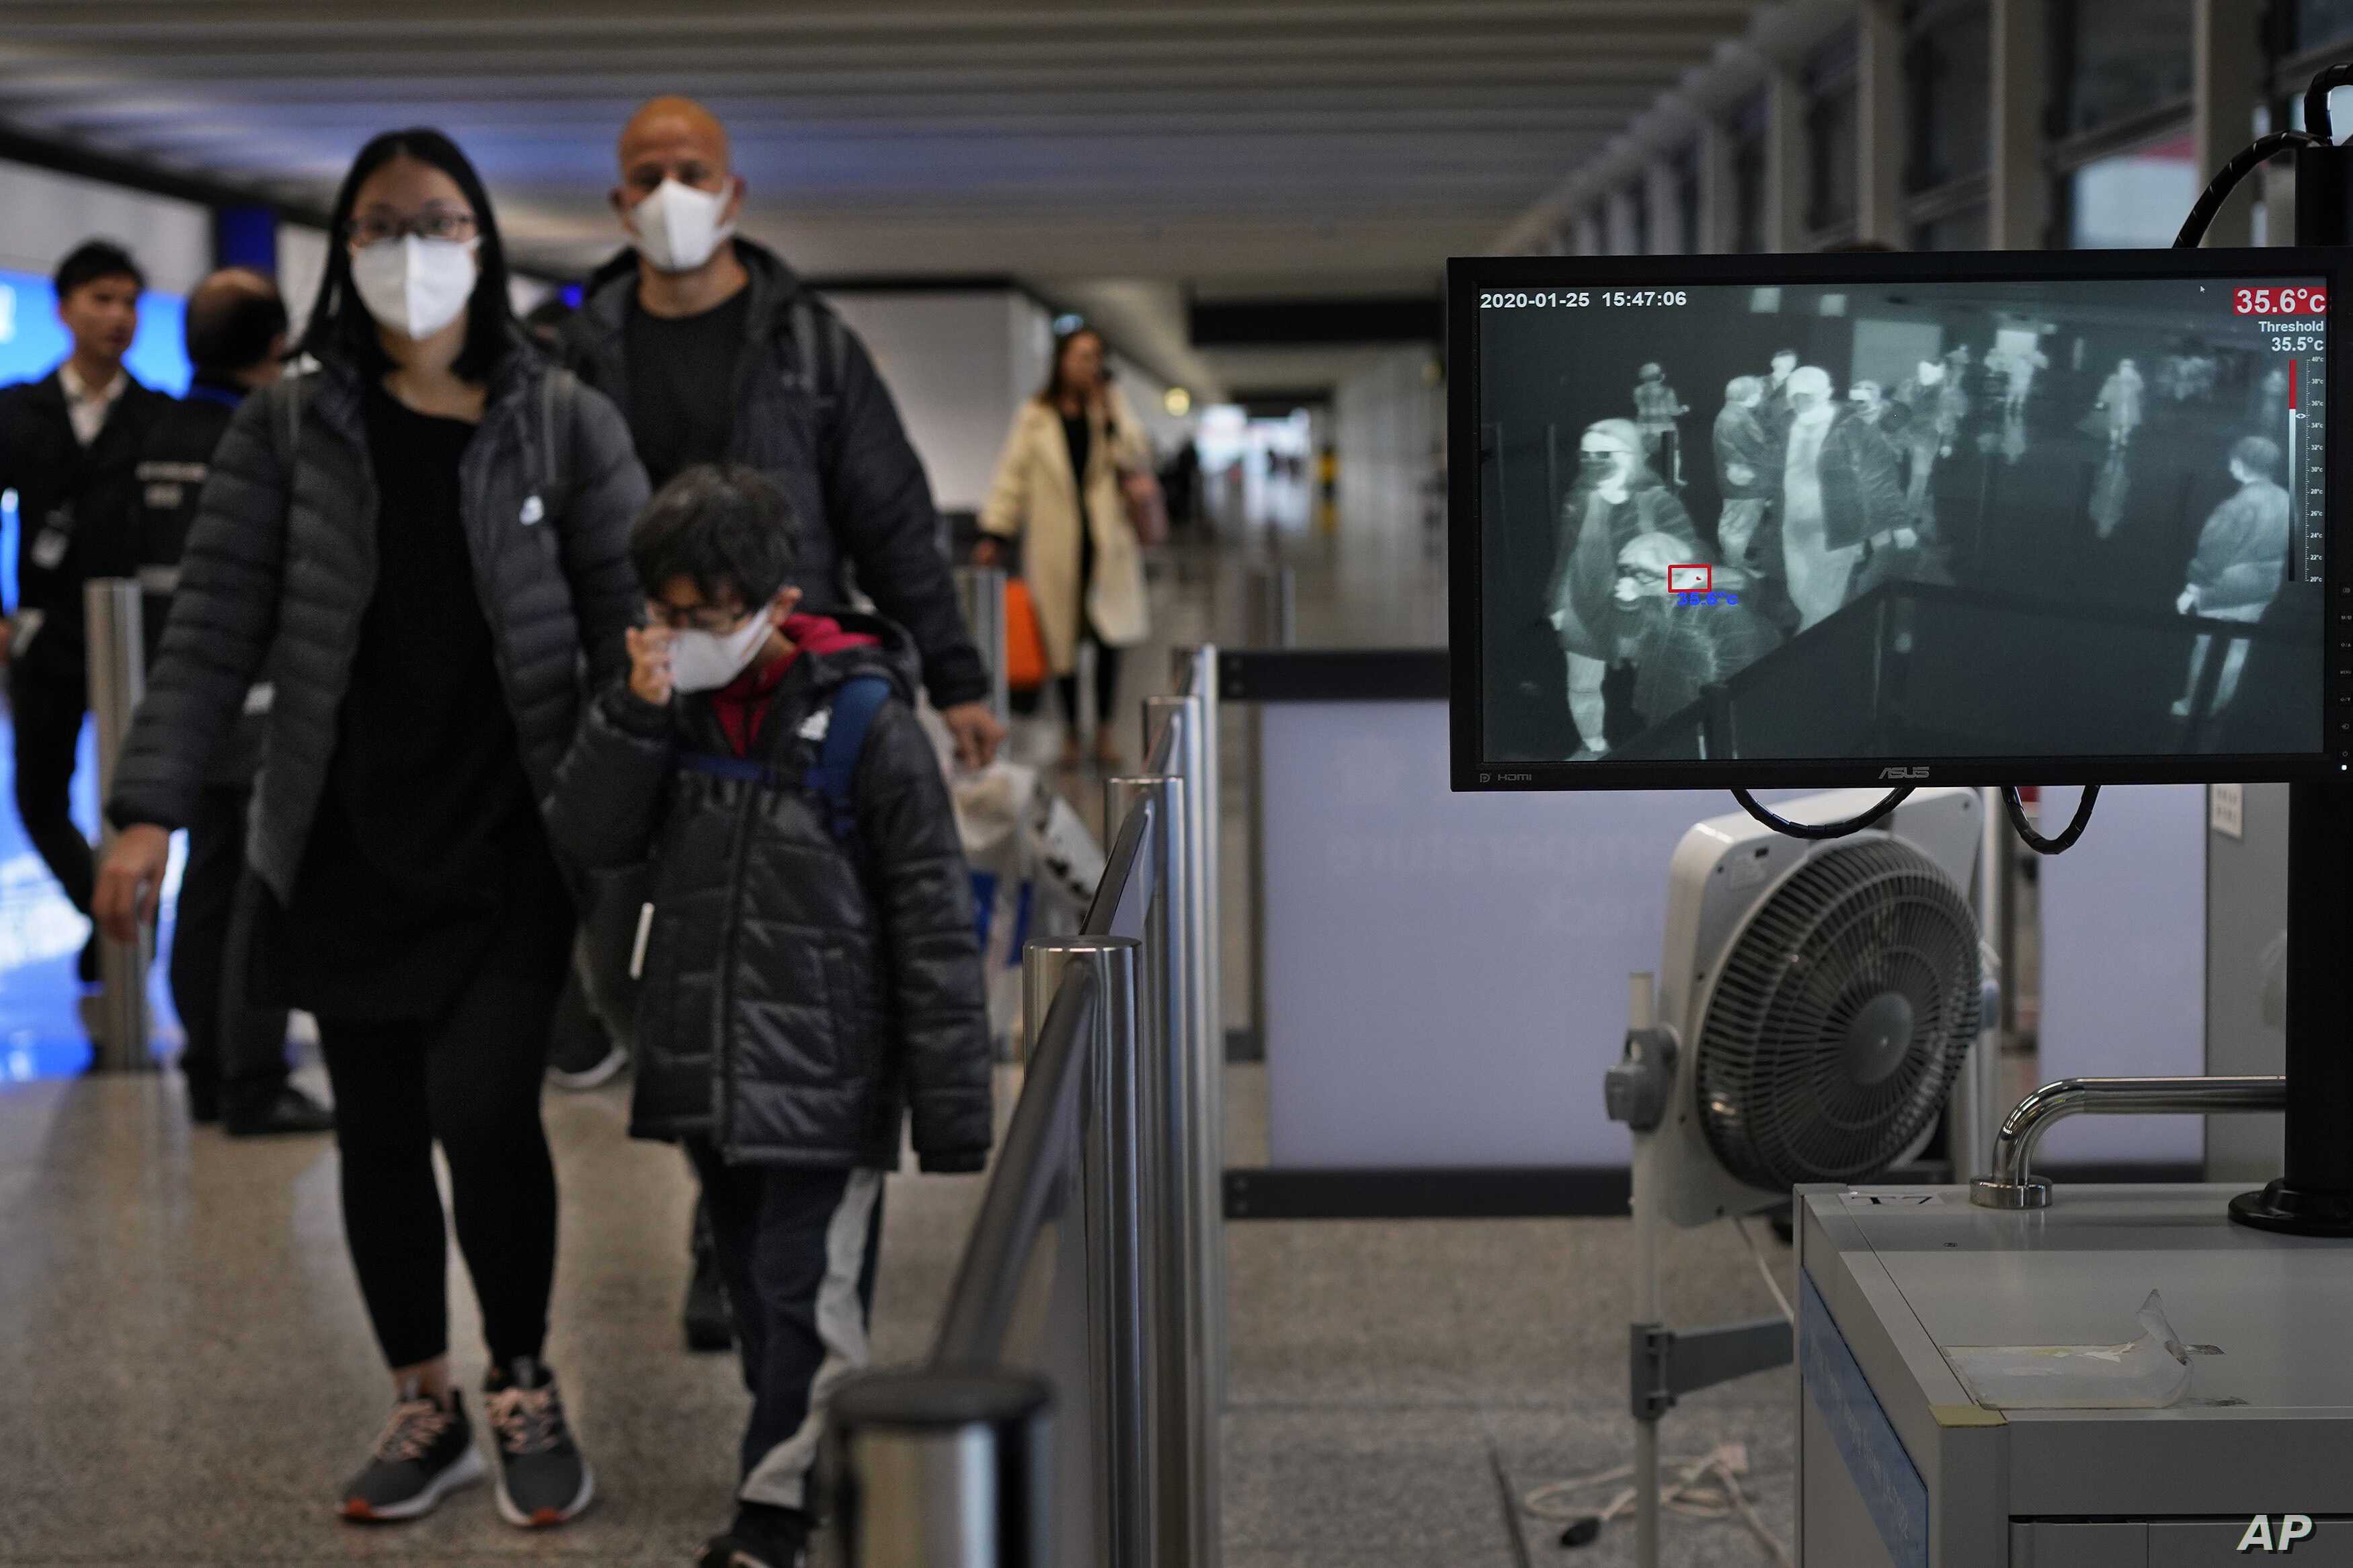 China orders nationwide measures to detect virus on flights, trains, buses